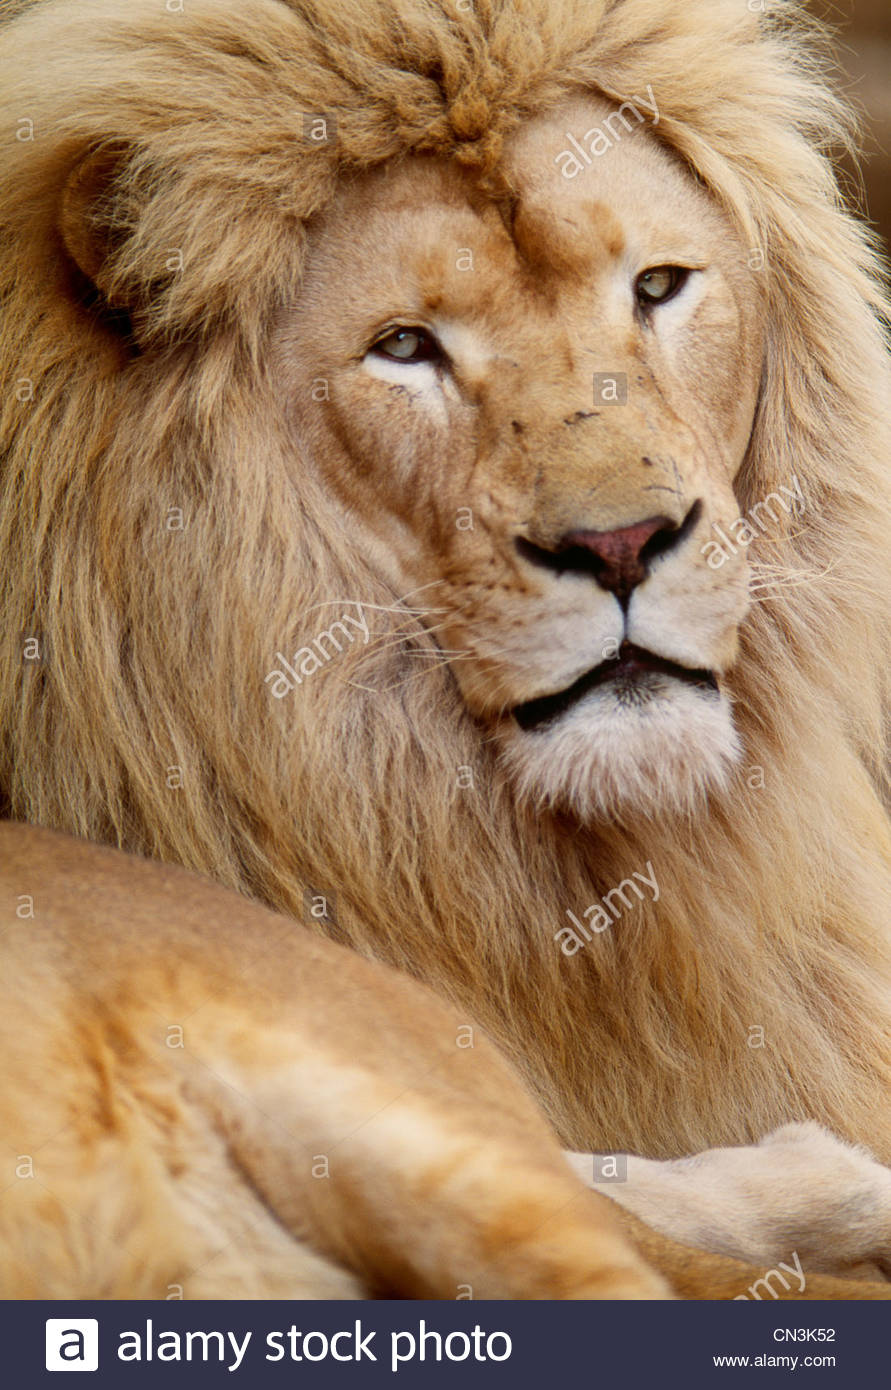 African lion, Tembuvate Preserve, South Africa - Stock Image